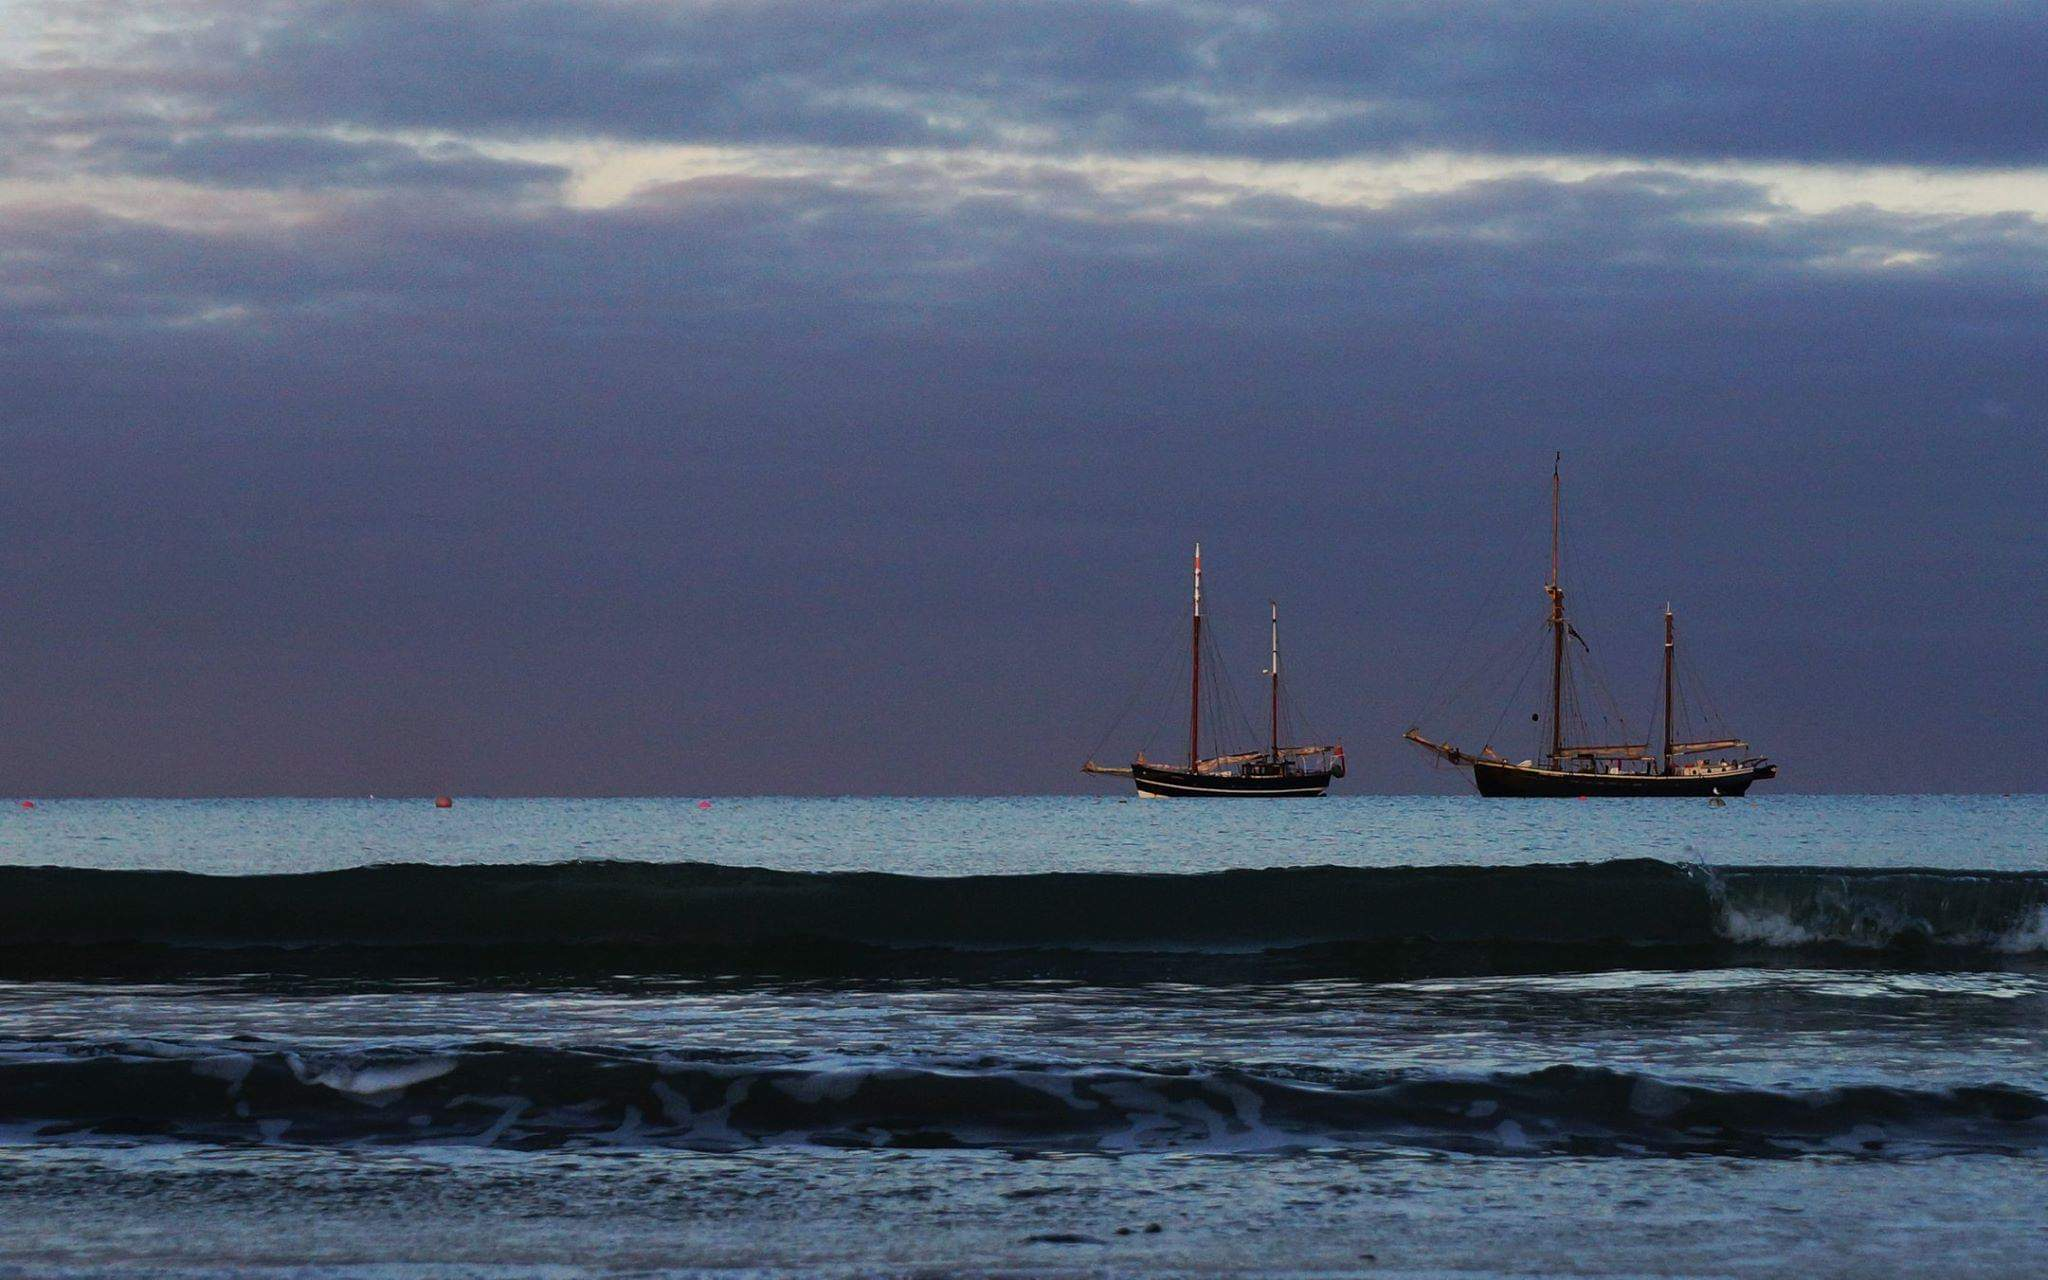 Moonfleet Sailing by Purbeck Footprints